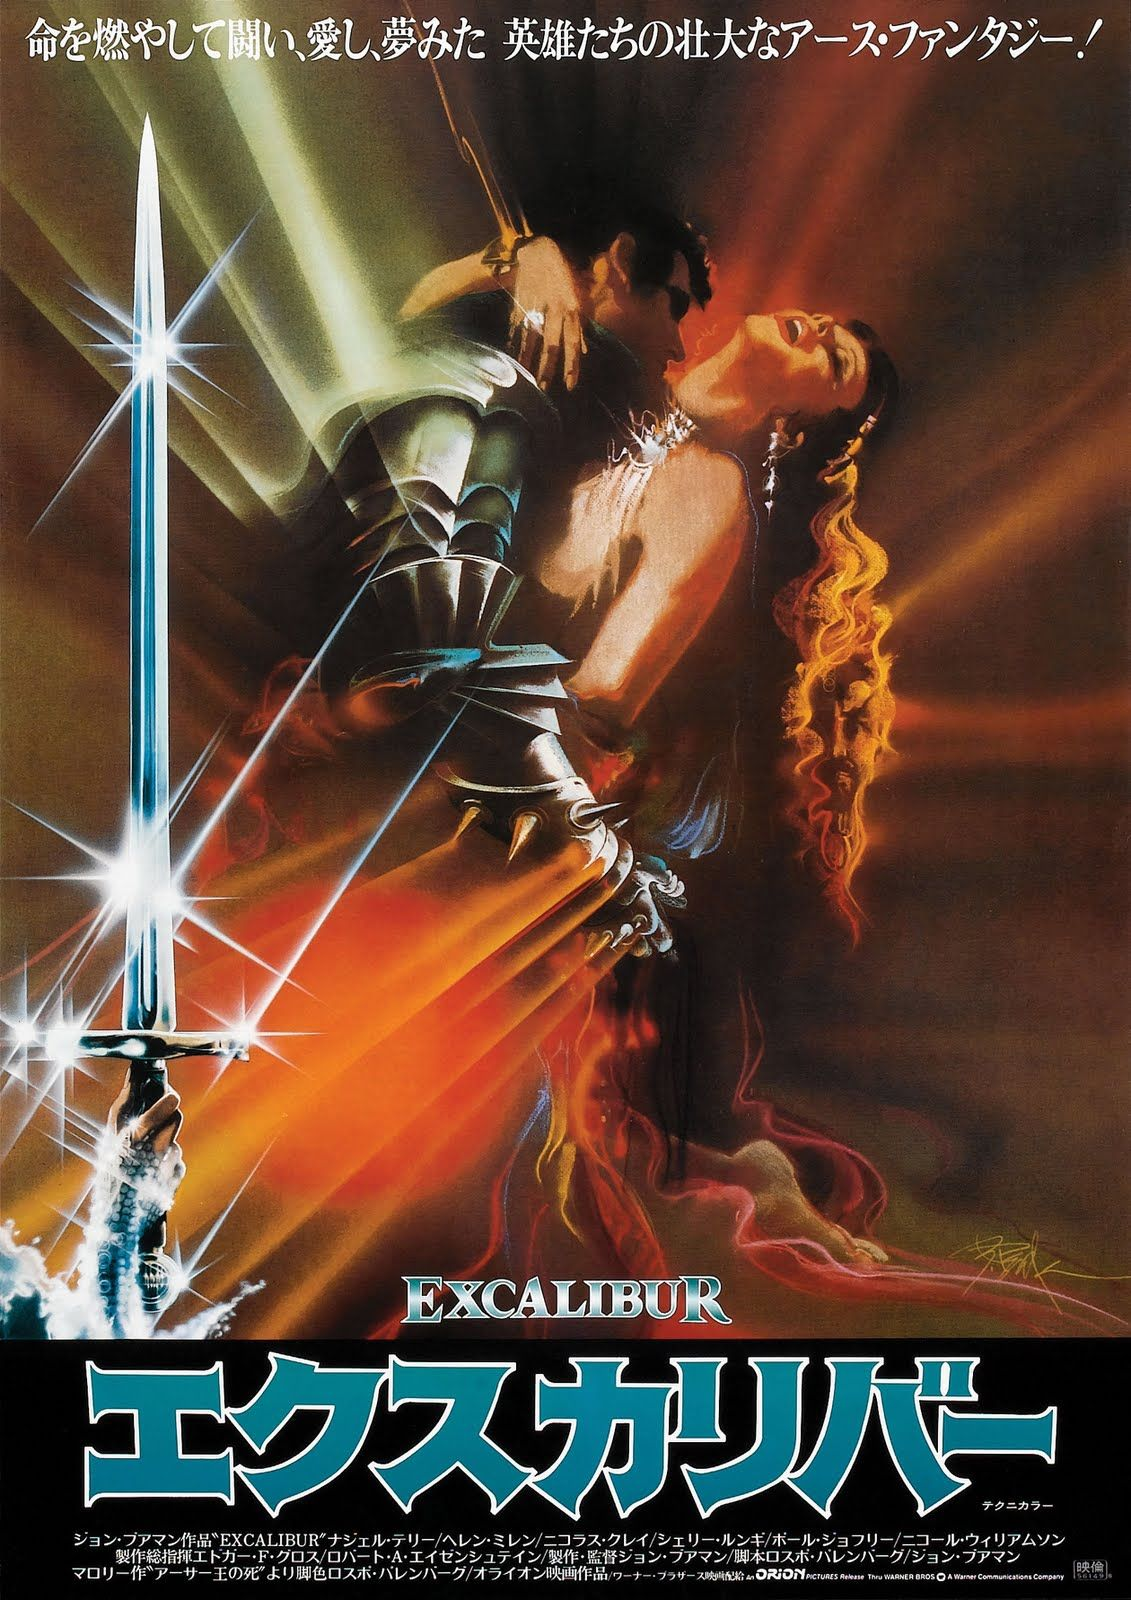 Excalibur Lol That Poster Is Awesome Movie Posters In 2018 Free Shipping Ampamp Strap Lanccelot Watch Aegis Of Bedivere